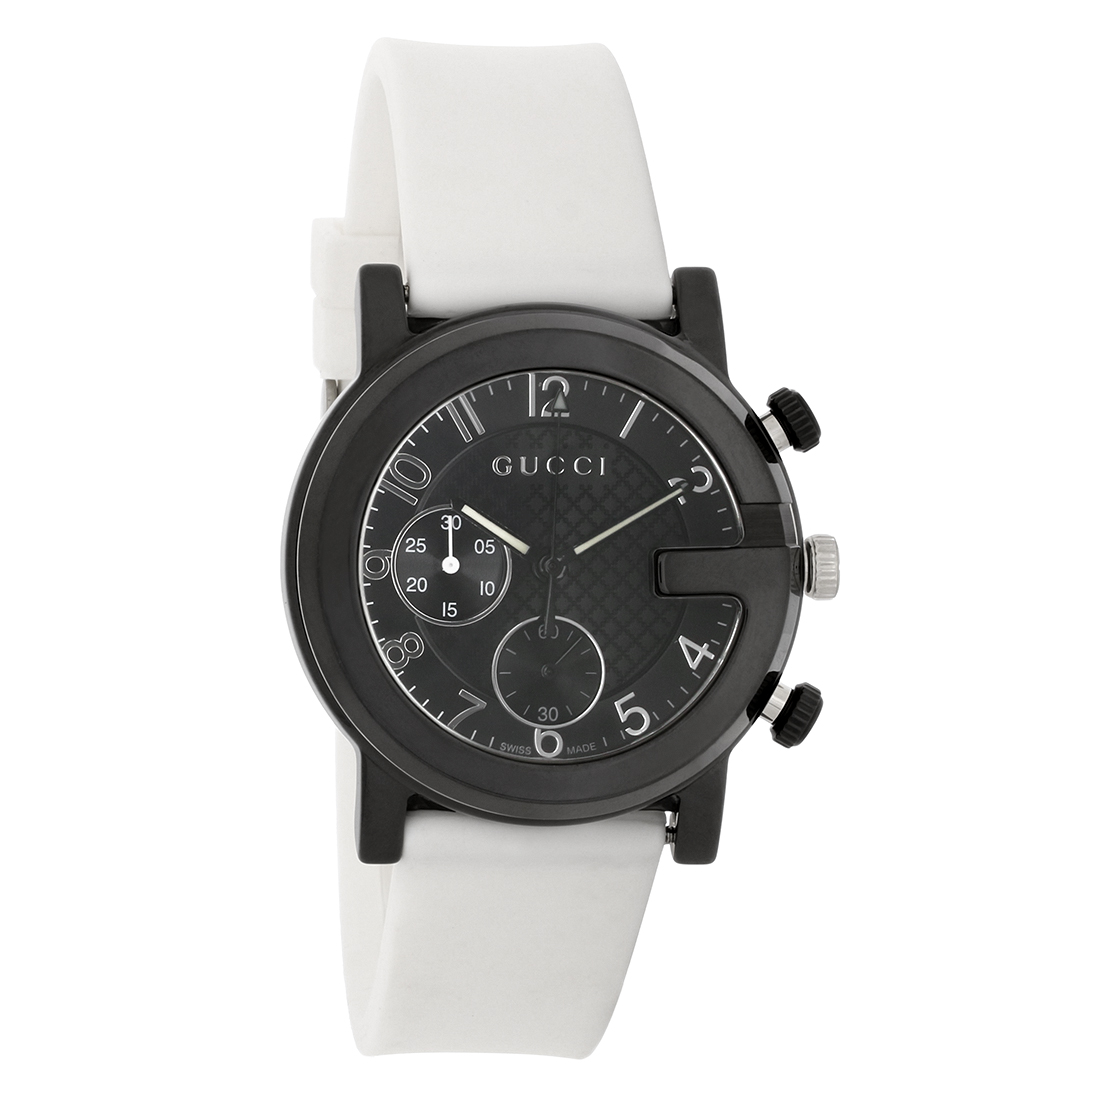 51a8981c0d657 Women's Watches - Top Brands - Gucci - Inventory Adjusters